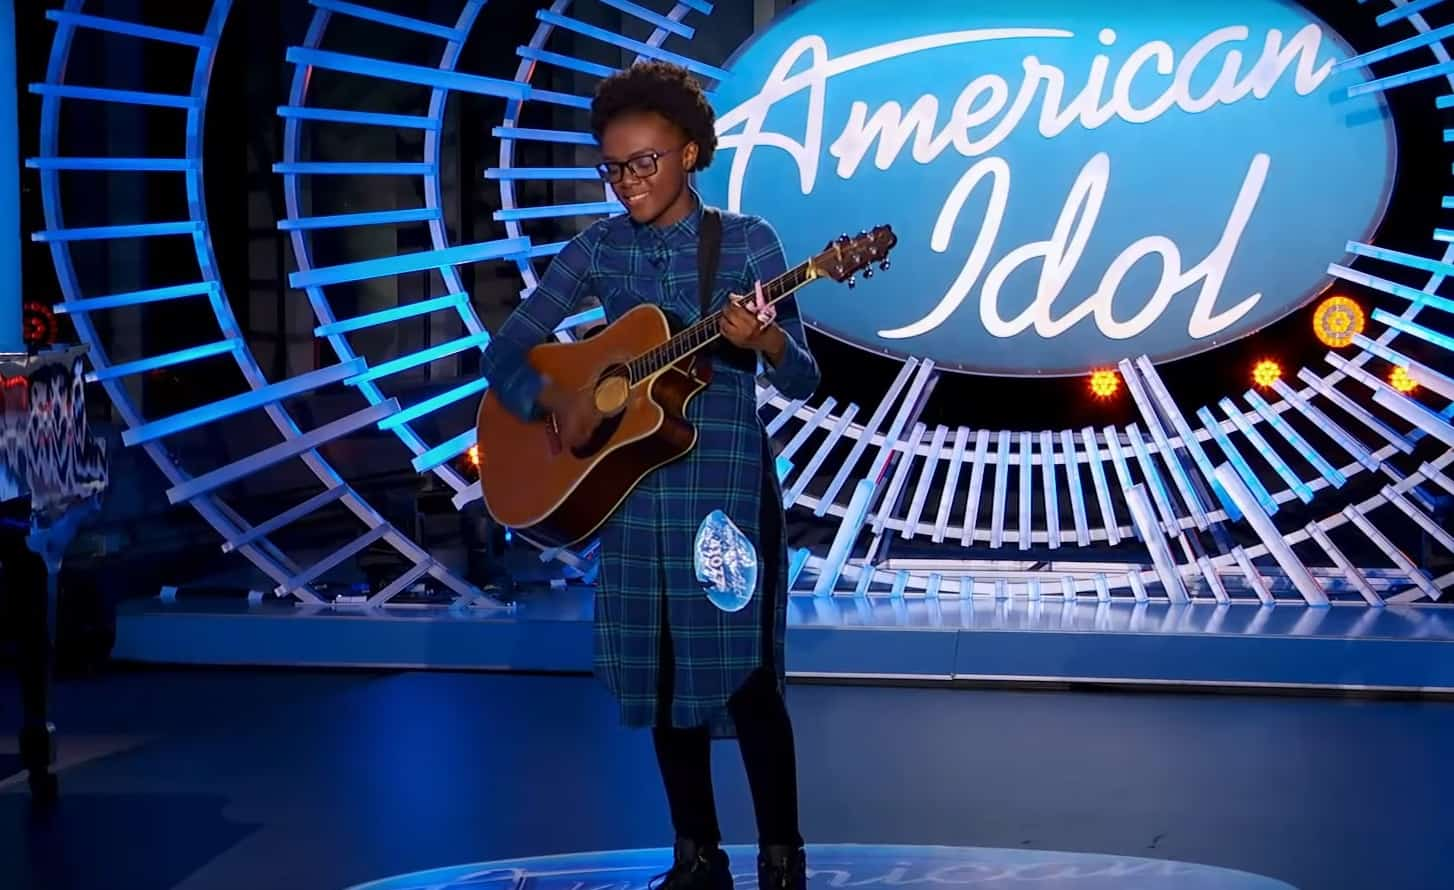 American idol singer Kai wows when given a second chance